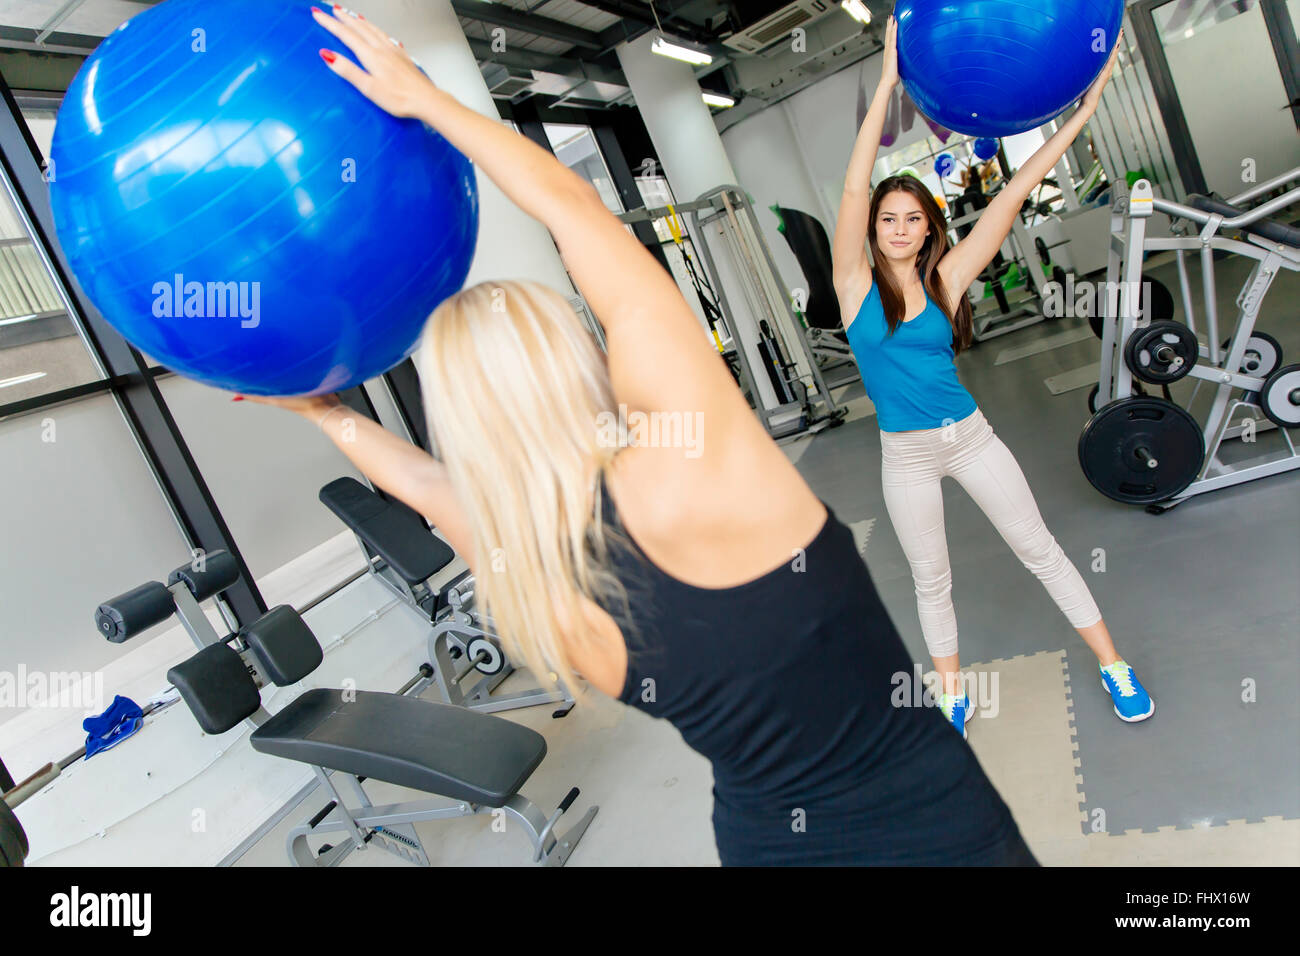 Women, friends training in gym and stretching muscles with medicine ball - Stock Image